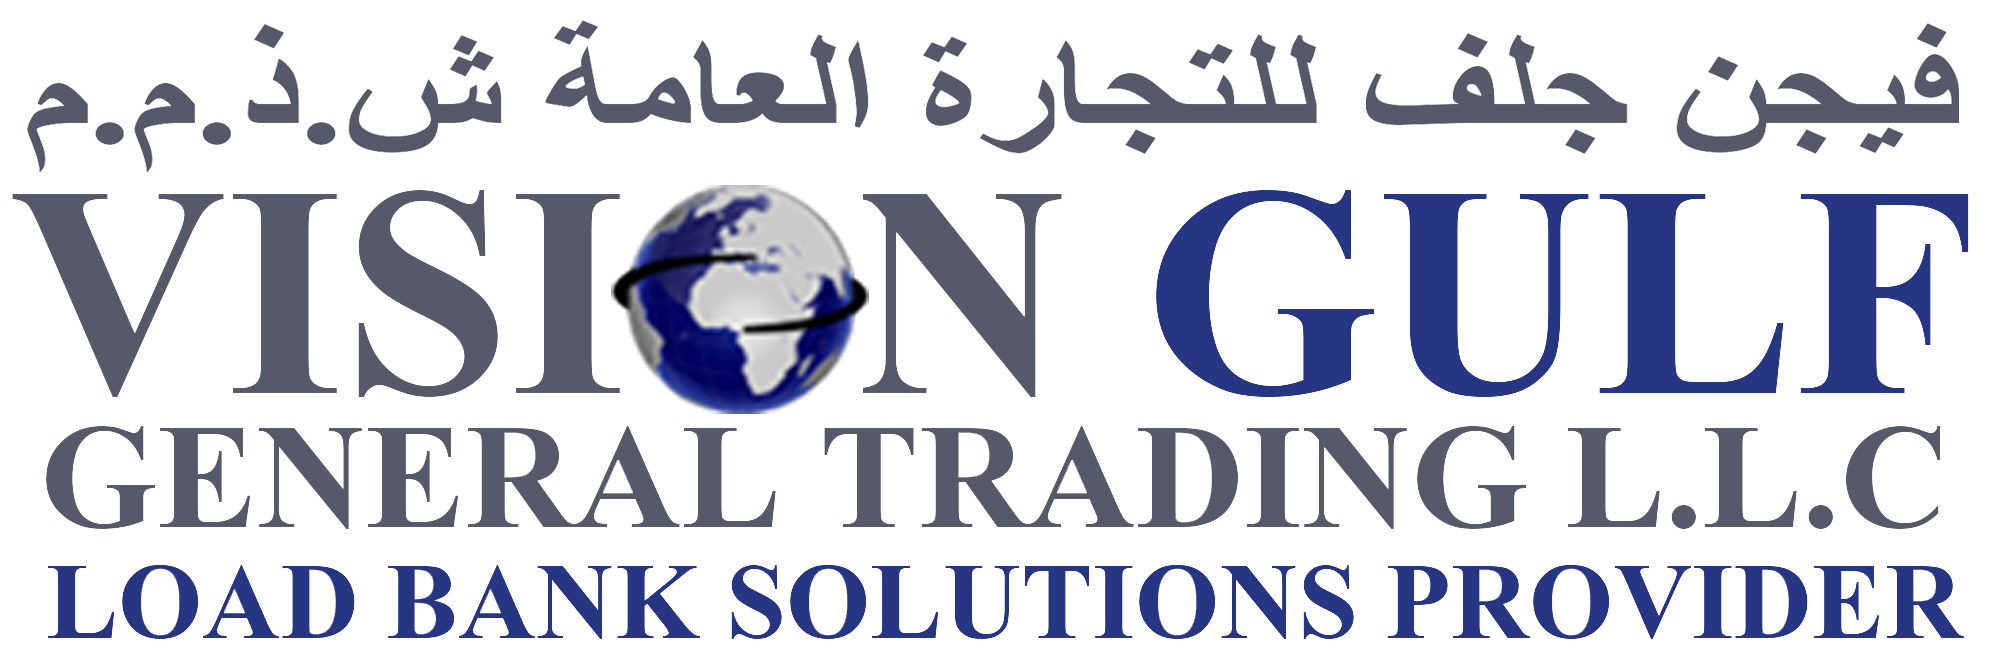 VISION GULF GENERAL TRADING L.L.C.